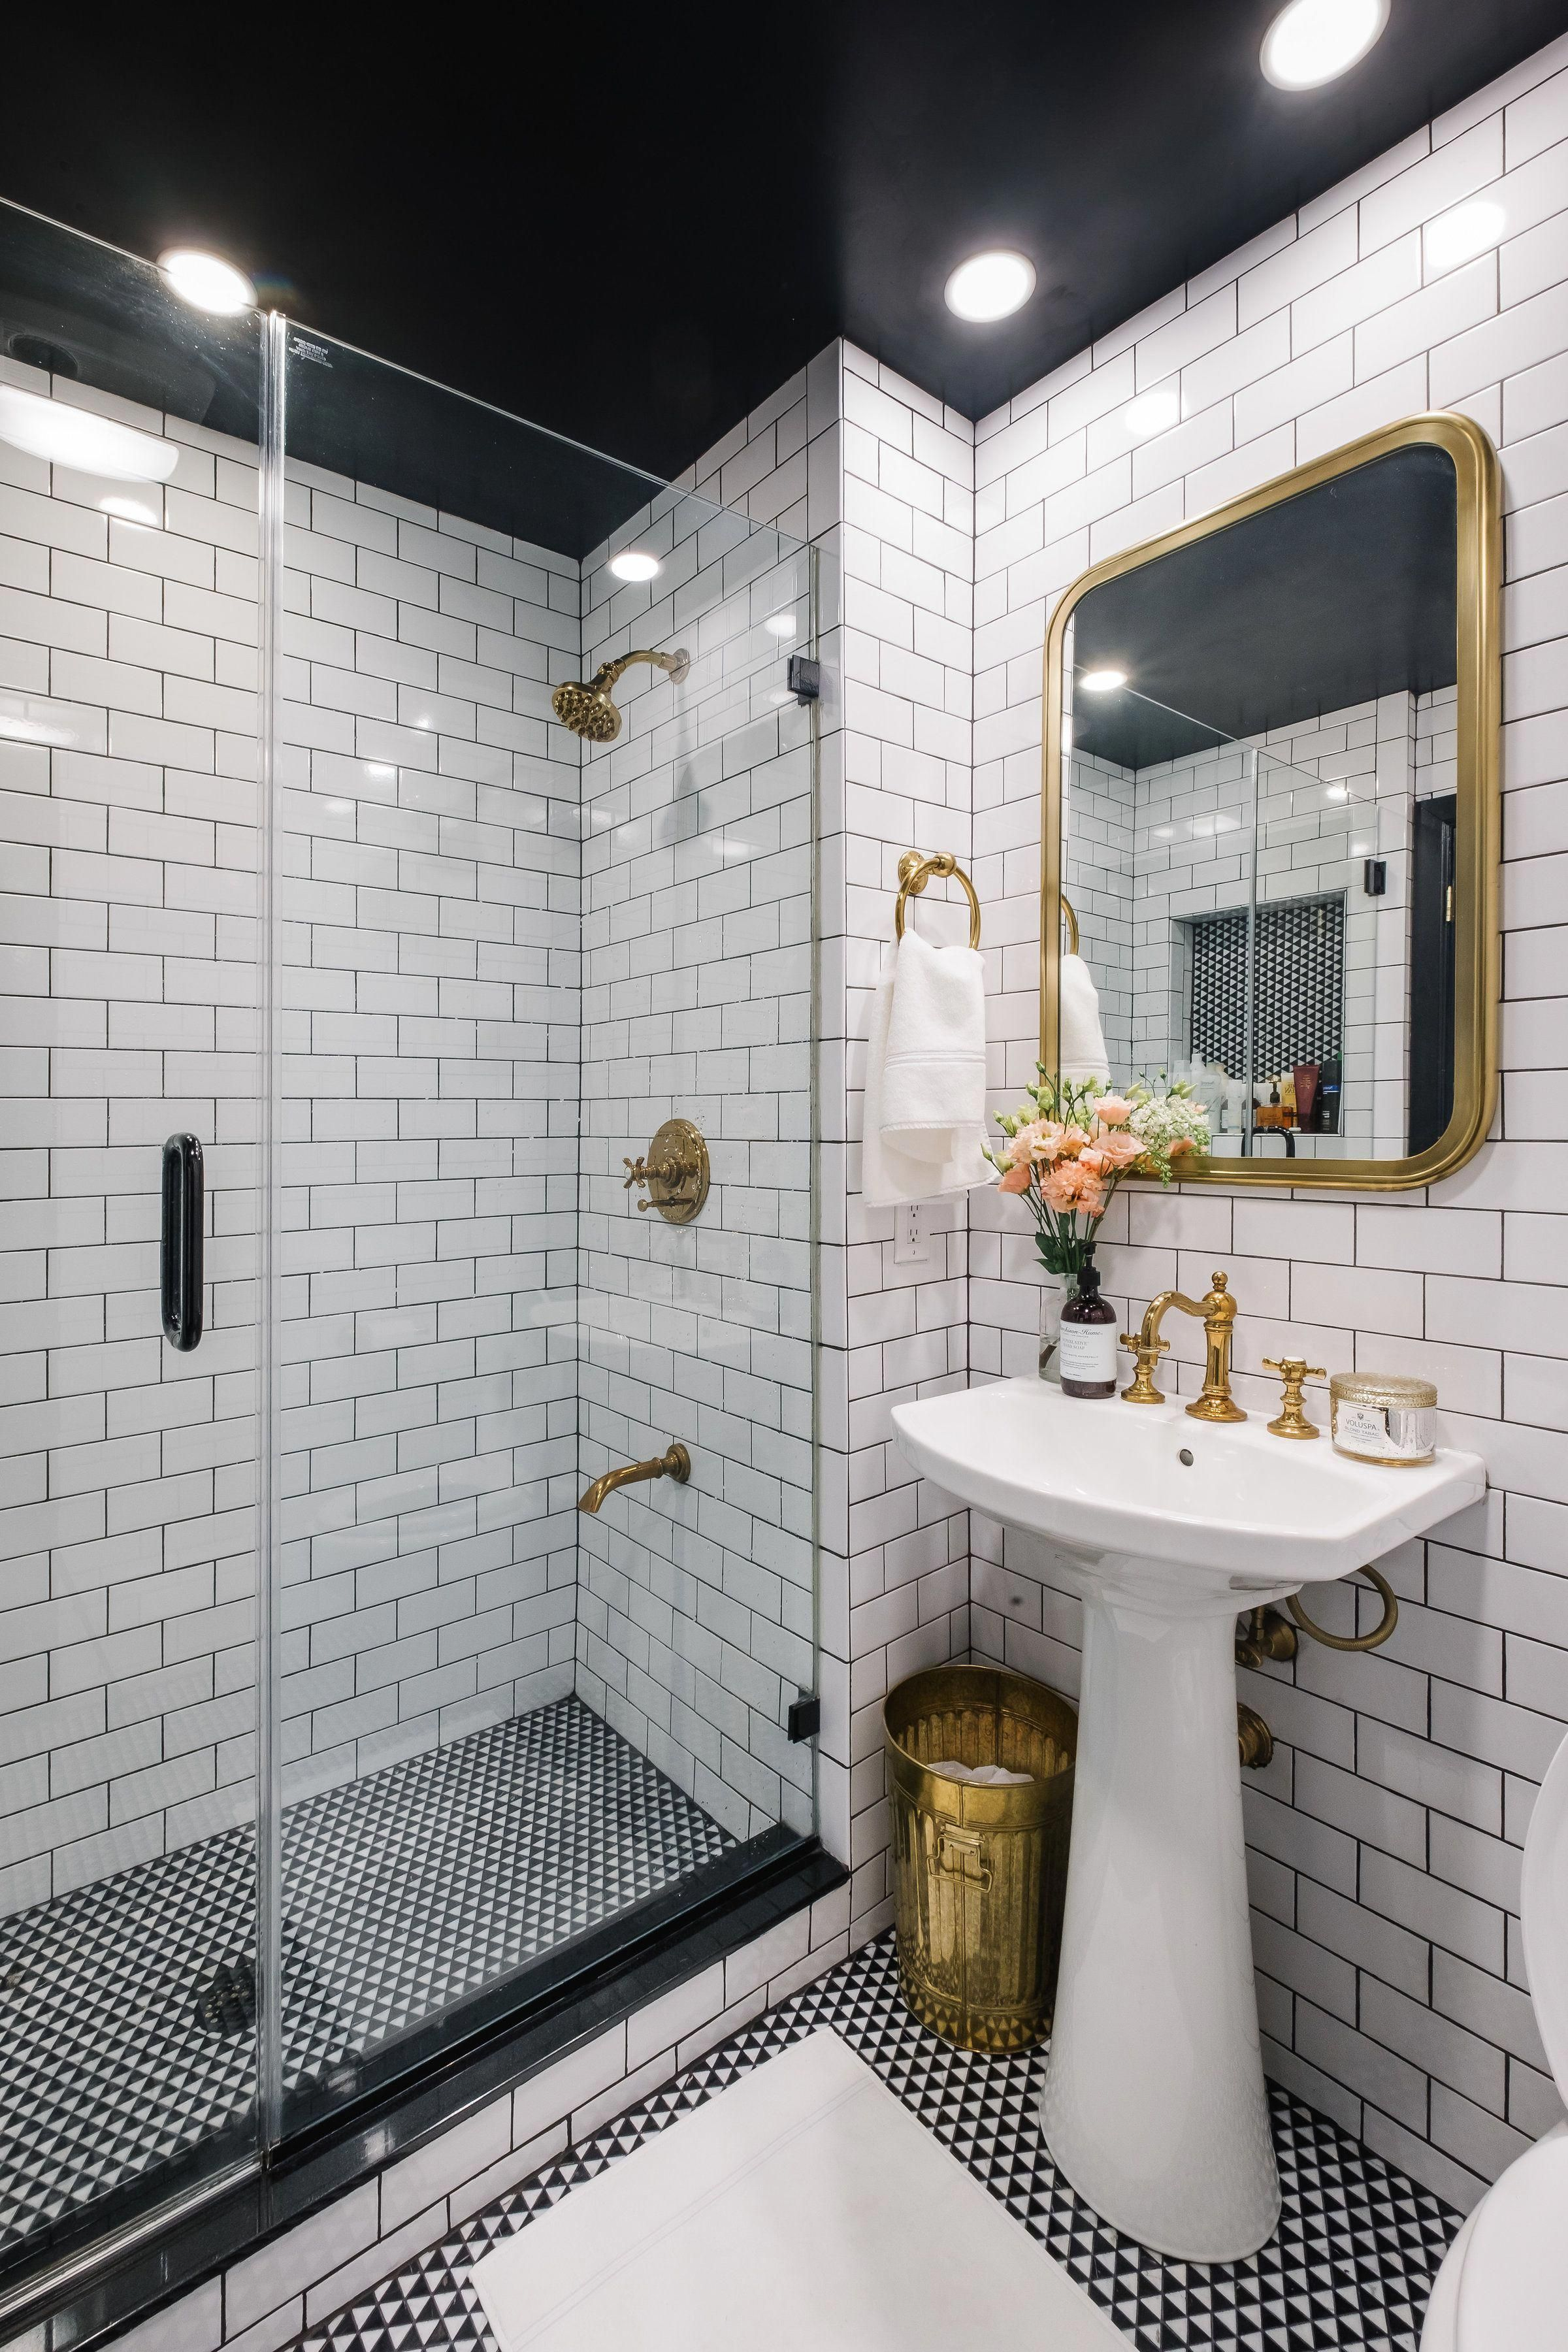 10 Scrumptious Gold Bathroom Accessories That You Need To Copy